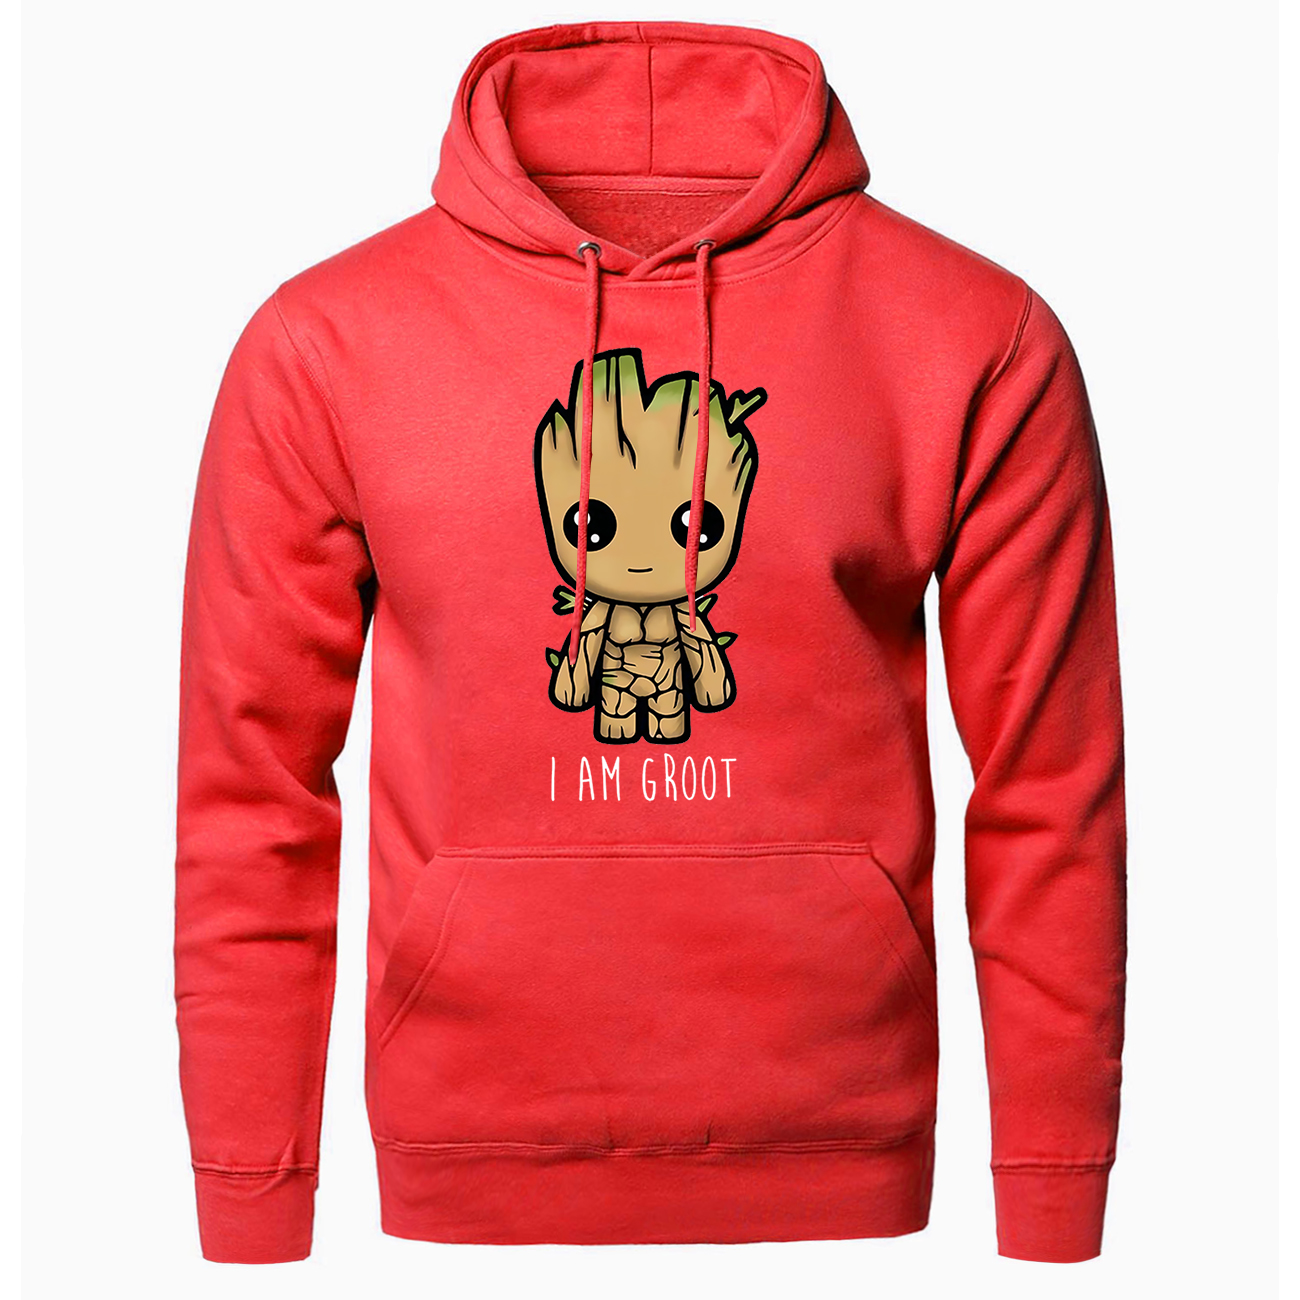 Men Fashion Groot Anime Printed Hooded Tracksuits Handsome Fluffy Fleece Sweatshirt Spring Autumn Hip Hop Streetwear Man Jackets